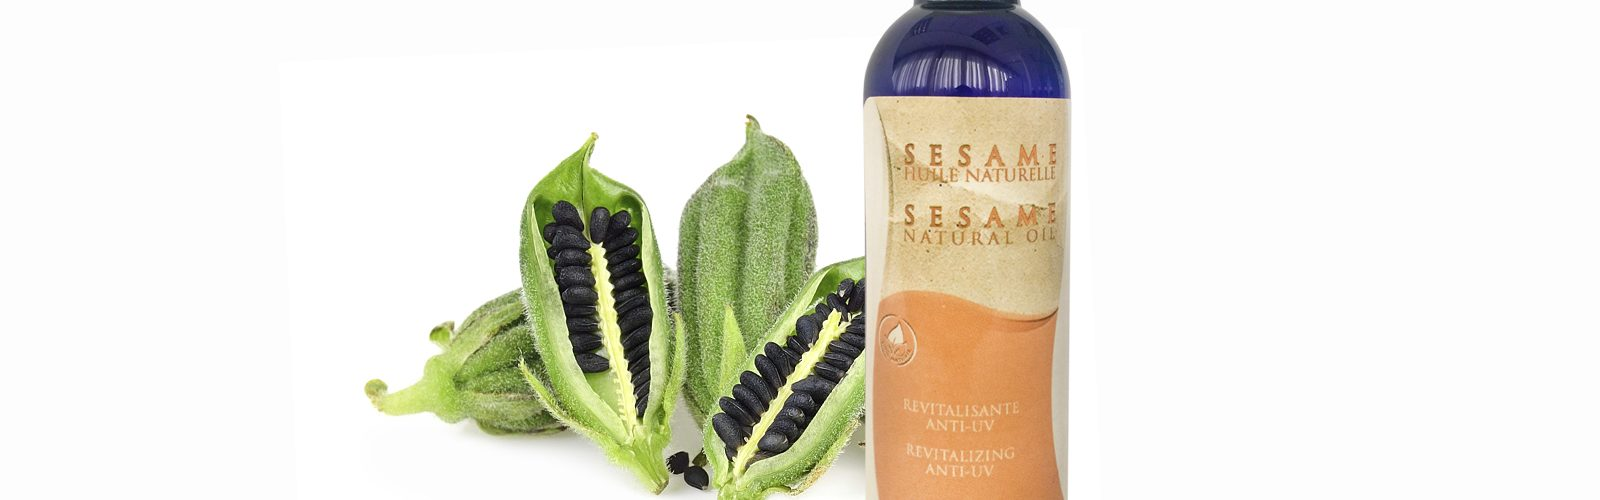 sesame natural oil by atlas cosmetics